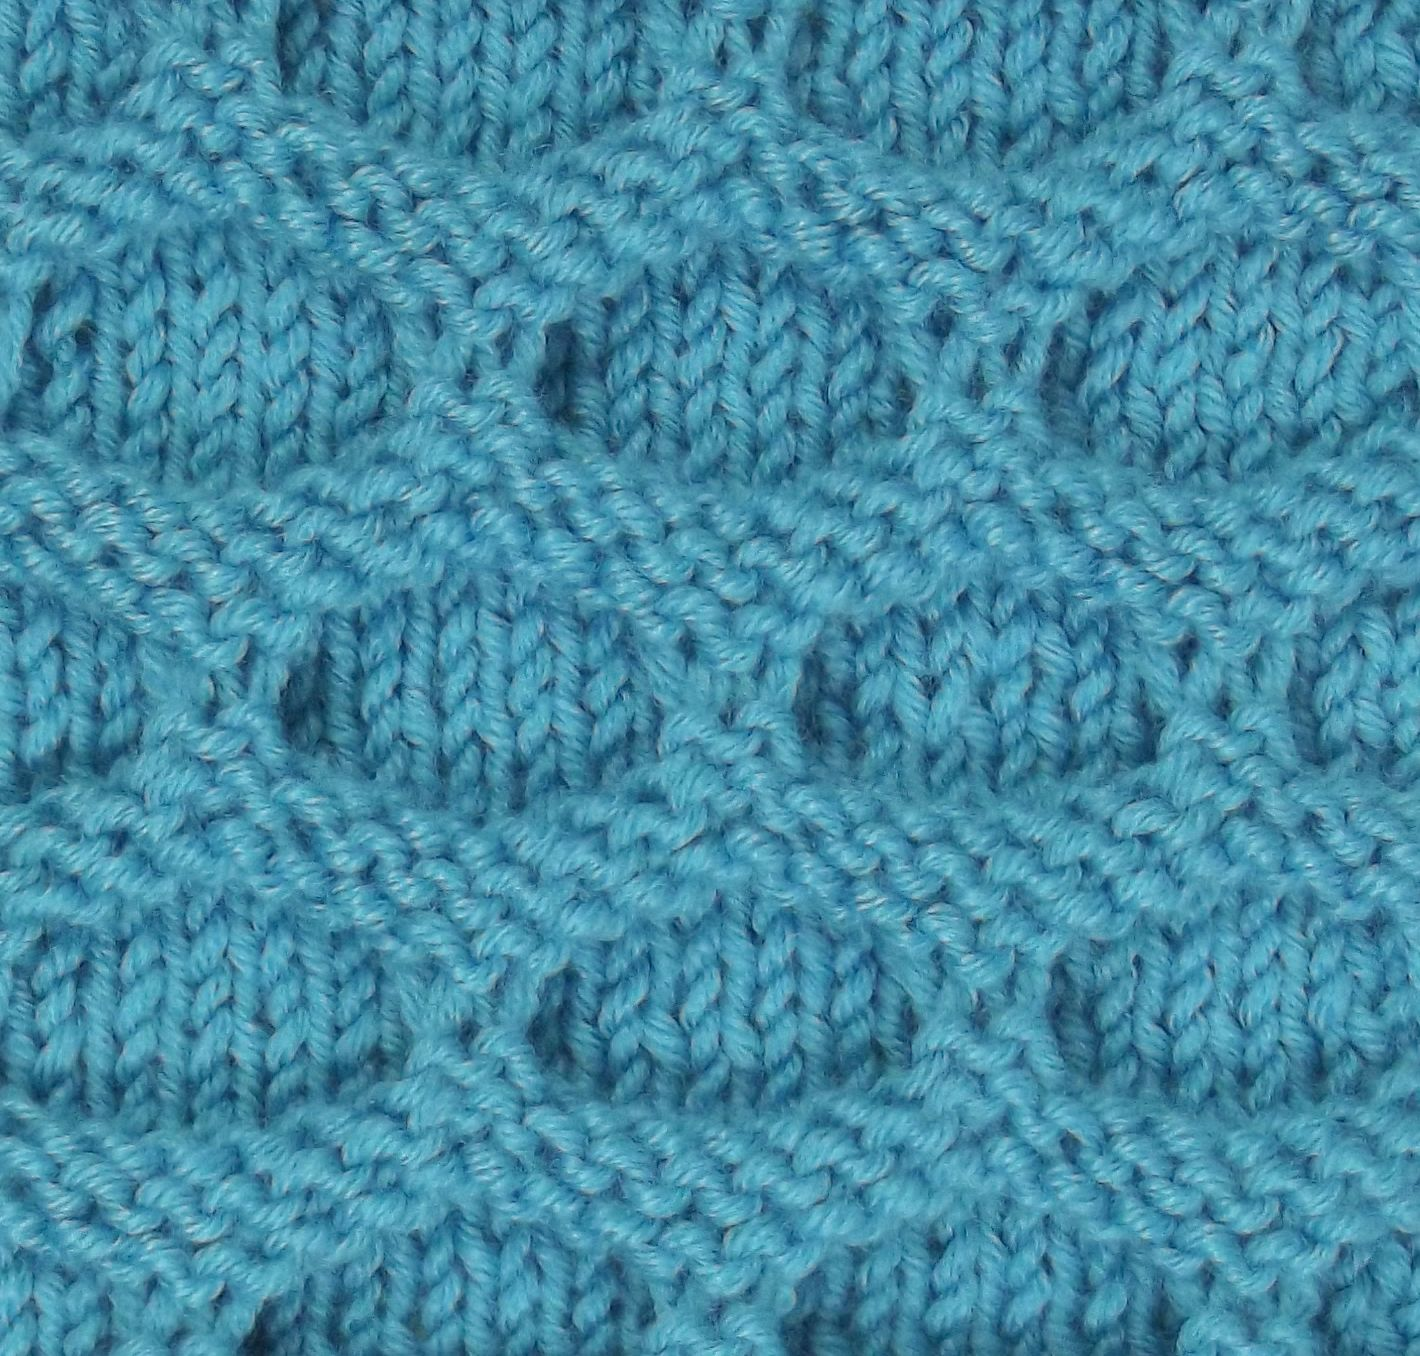 The Paving Stitch can be found in the Bobbles & Slip Stitches category. This simple slip stitch pattern results in a deeply textured fabric.